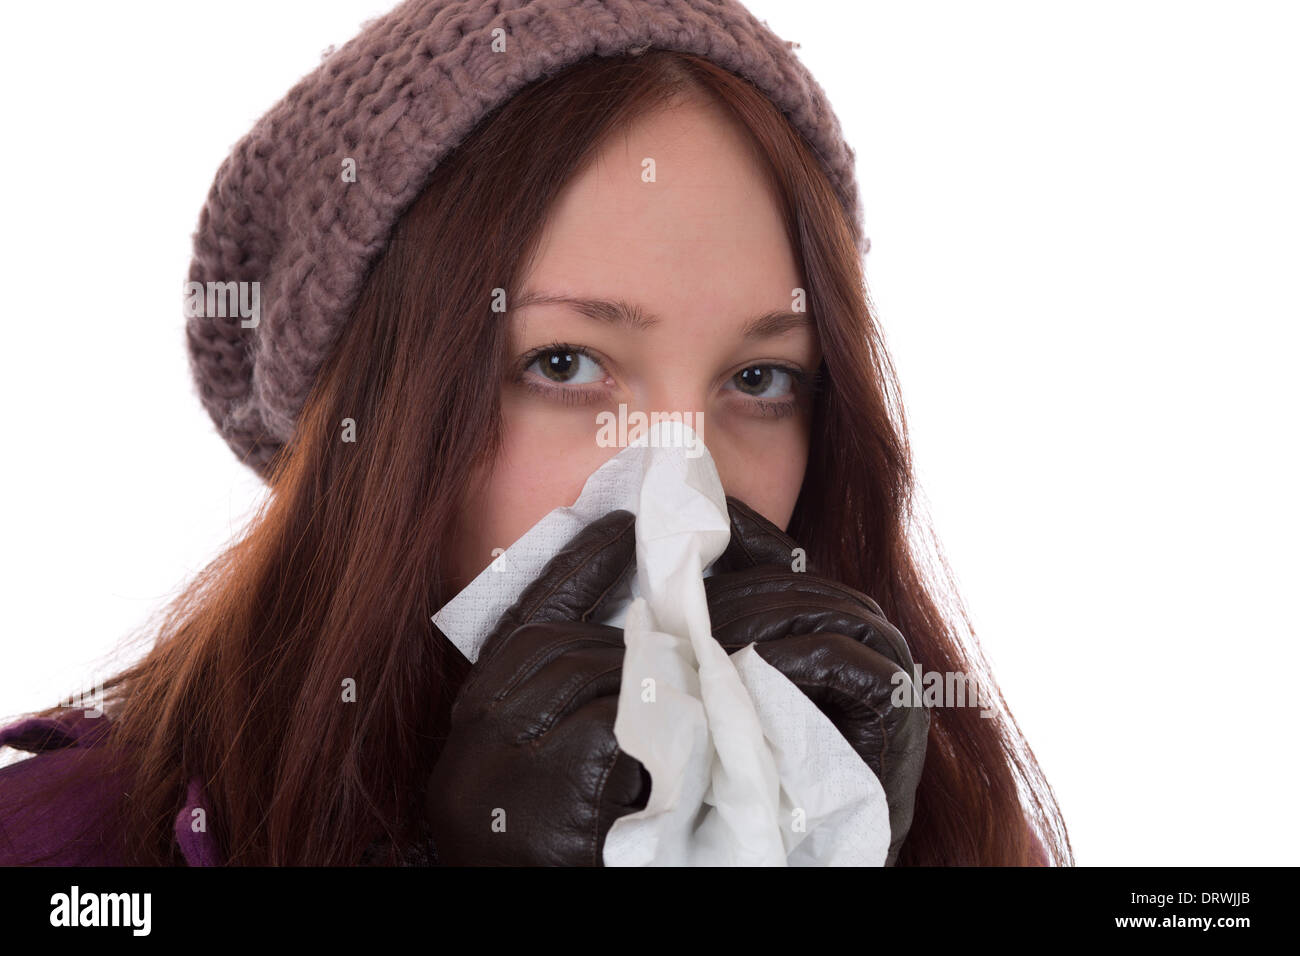 Young woman with a cold and flu virus sneezing, isolated on a white background - Stock Image